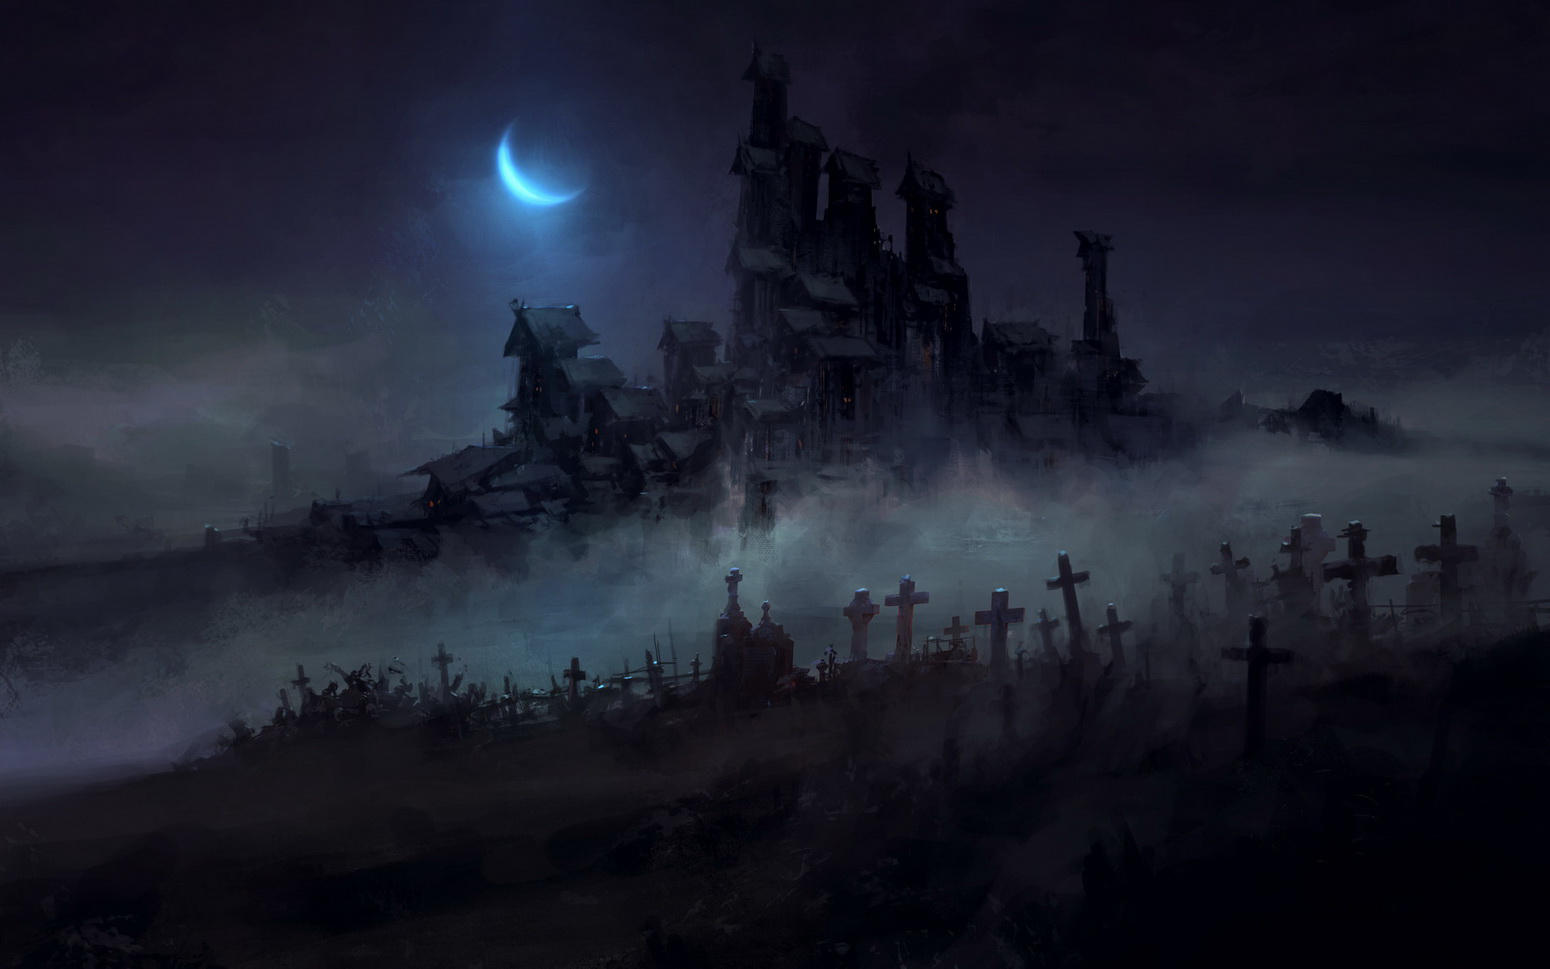 Dark Town by ChrisCold